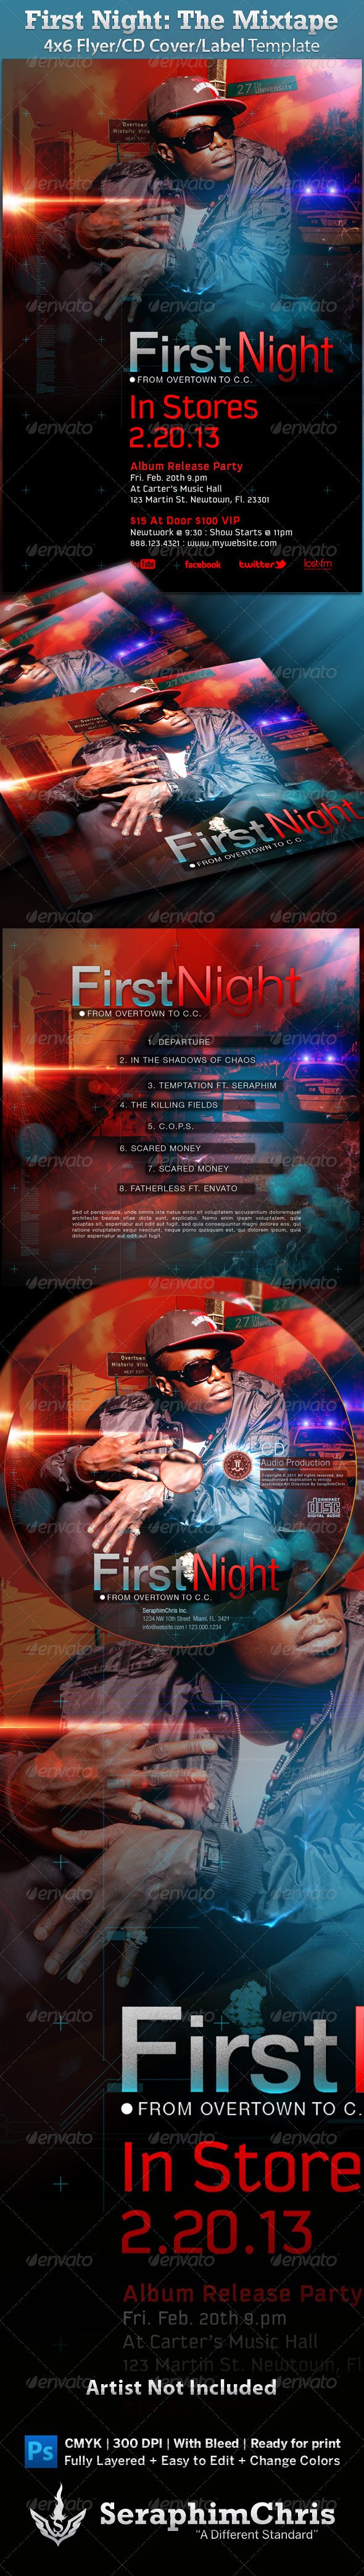 GraphicRiver Mixtape Album Flyer First Night 967262